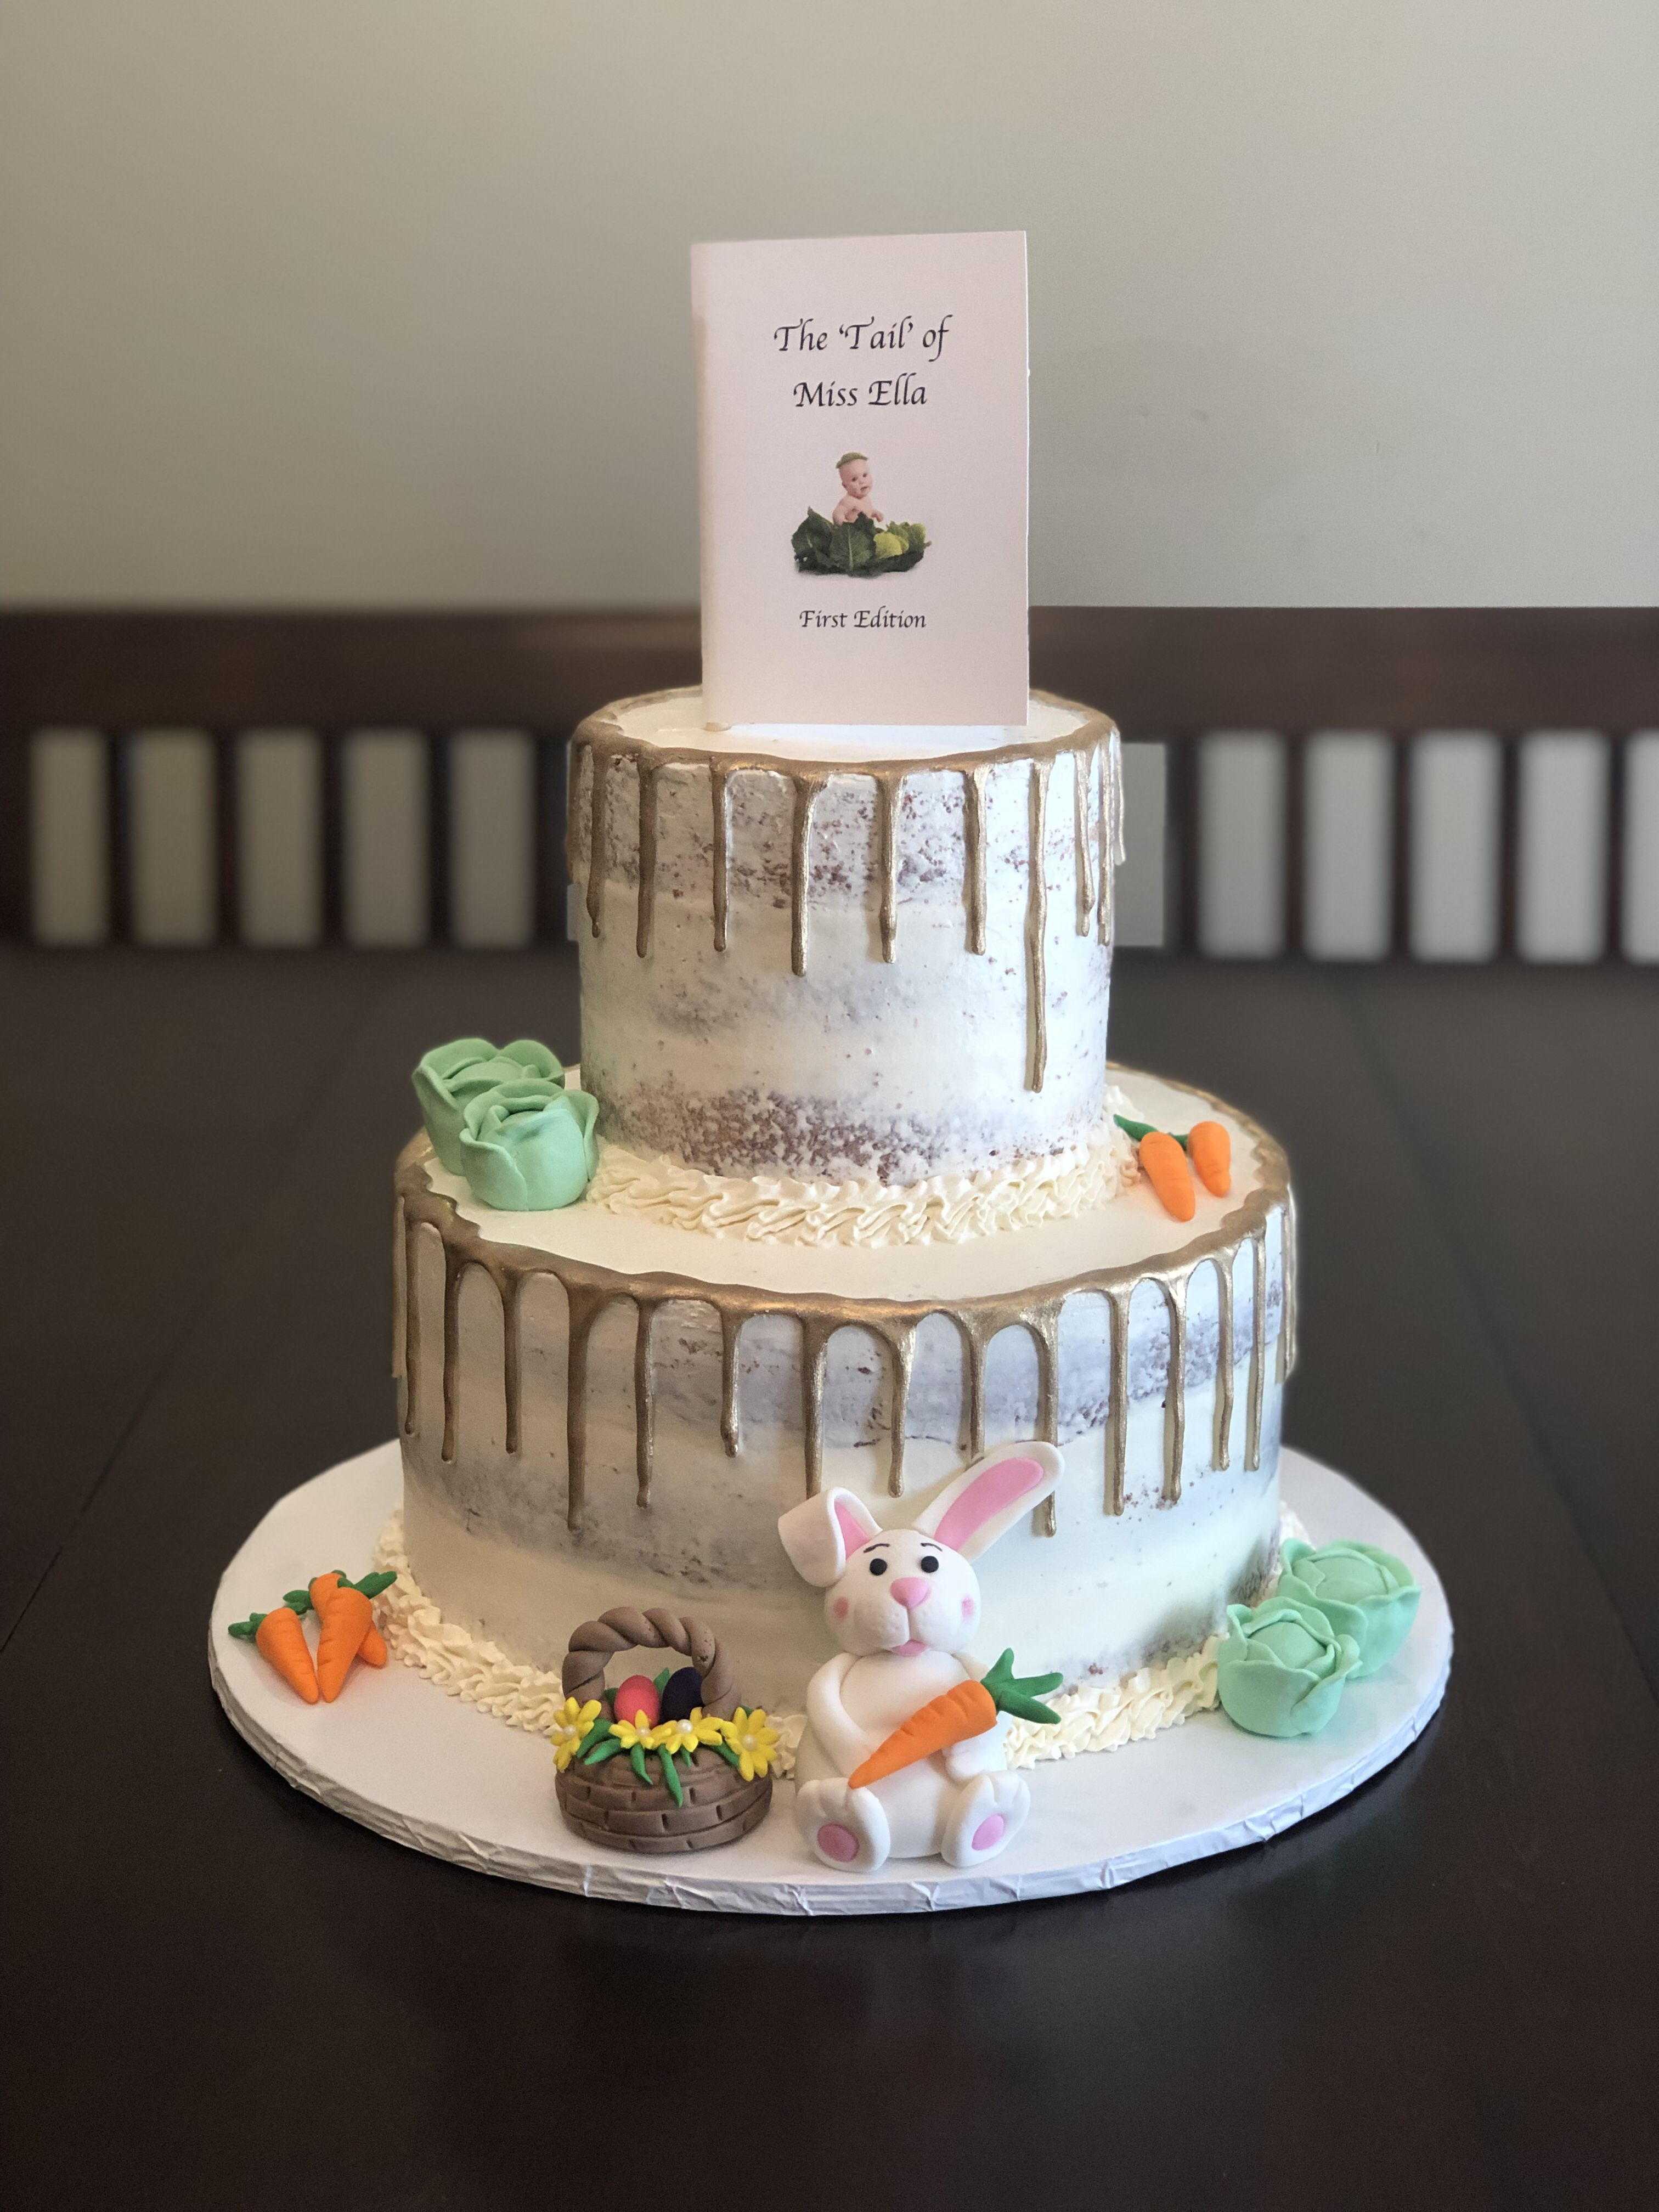 15 Precious Girl Baby Shower Cakes - Find Your Cake